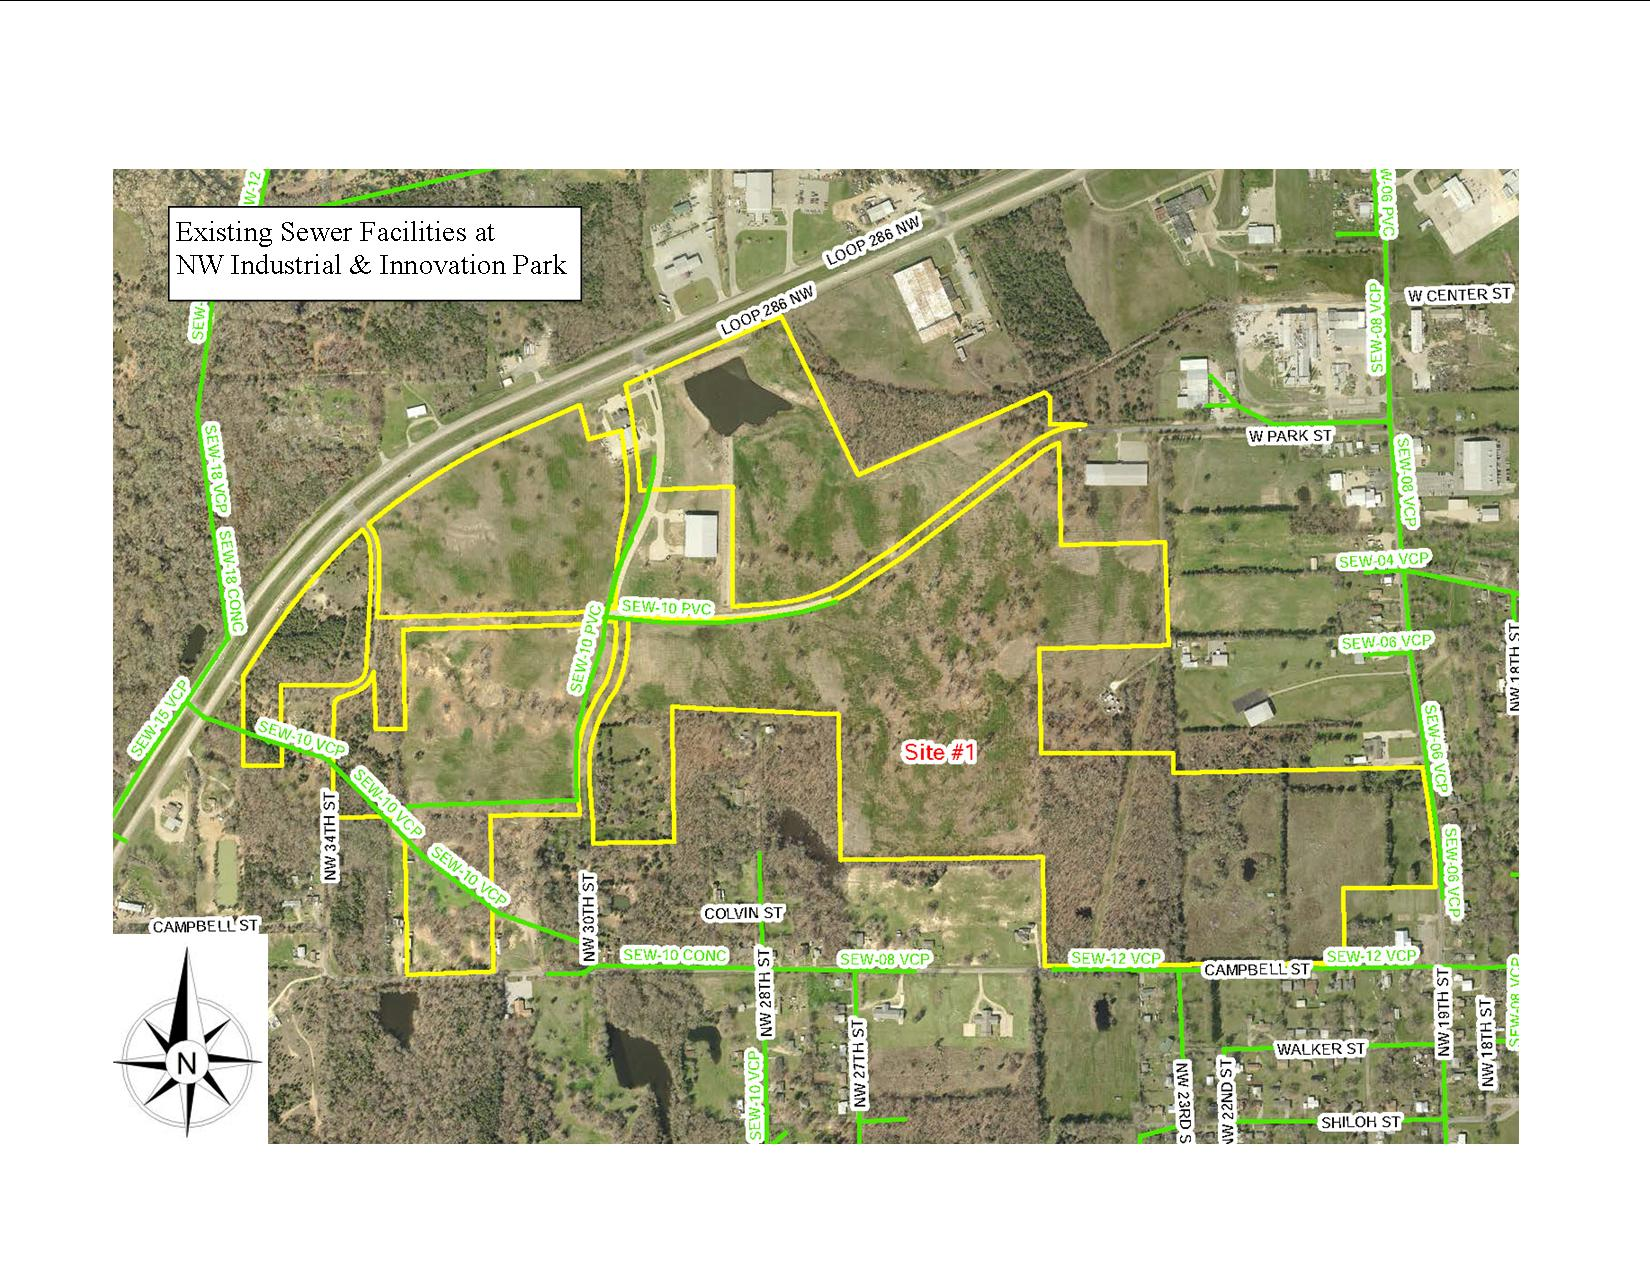 Existing Sewer map for NW Industrial Park